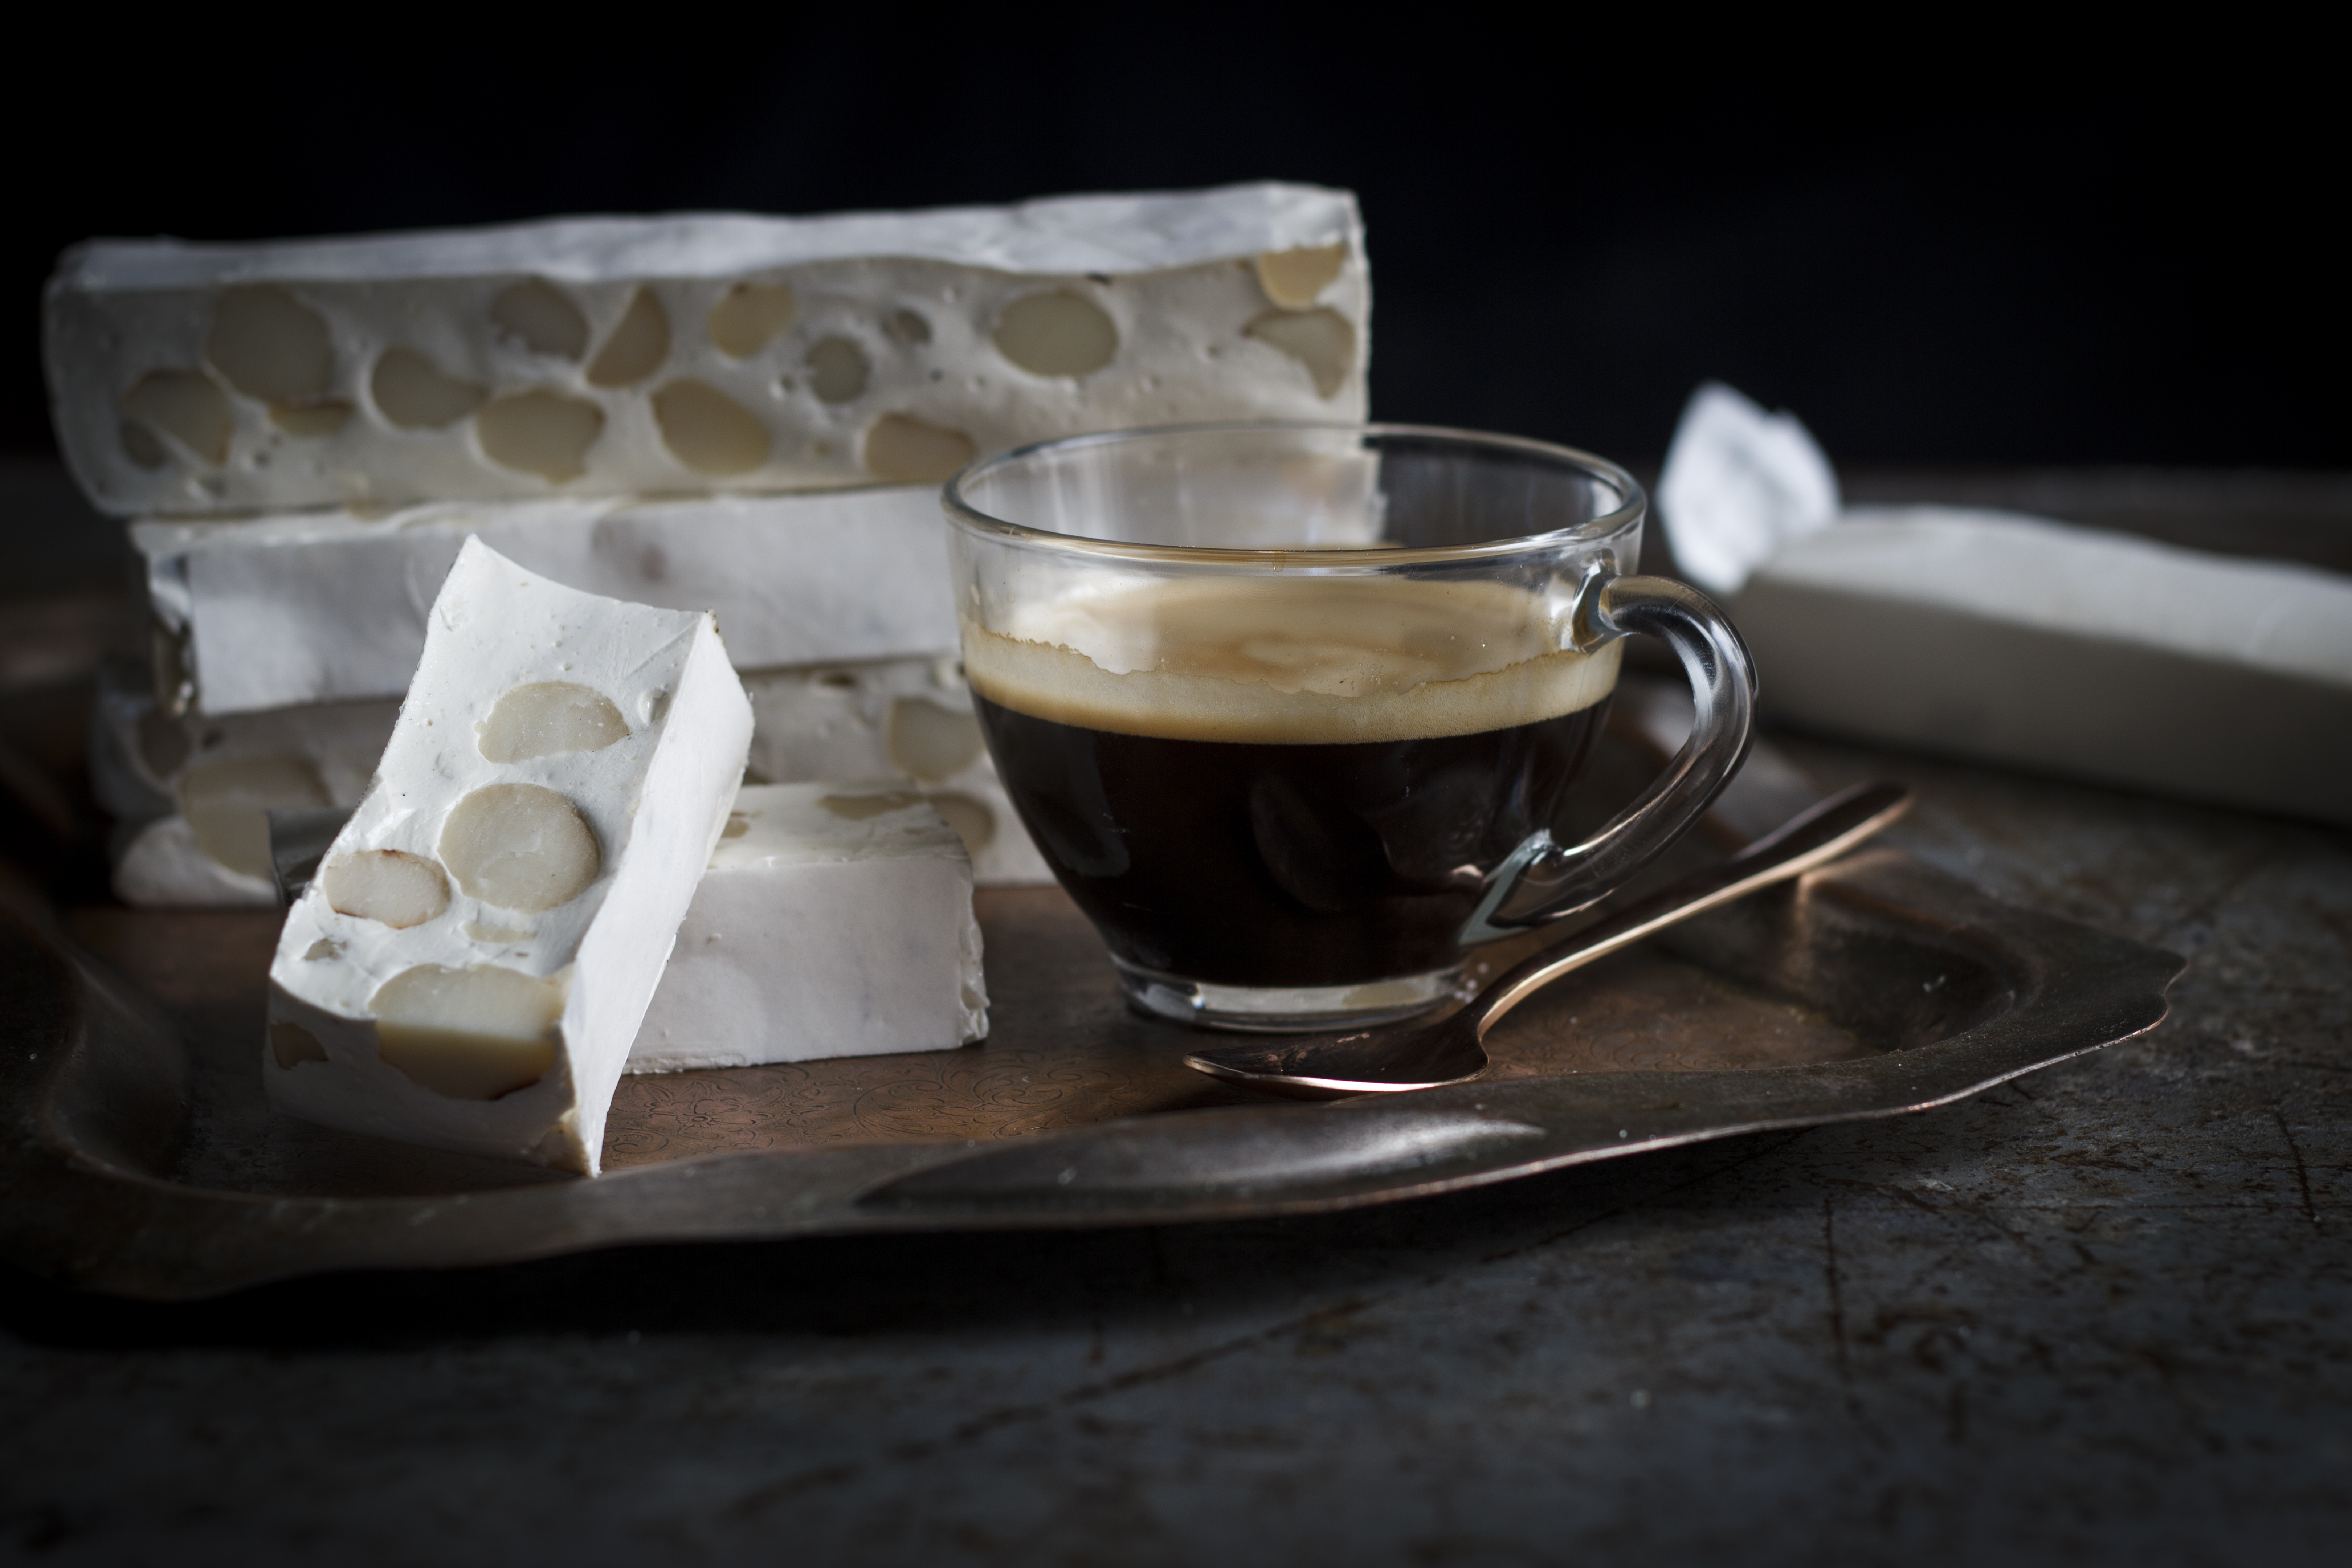 Homemade Vanilla Olive Oil Nougat with Macadamia Nuts